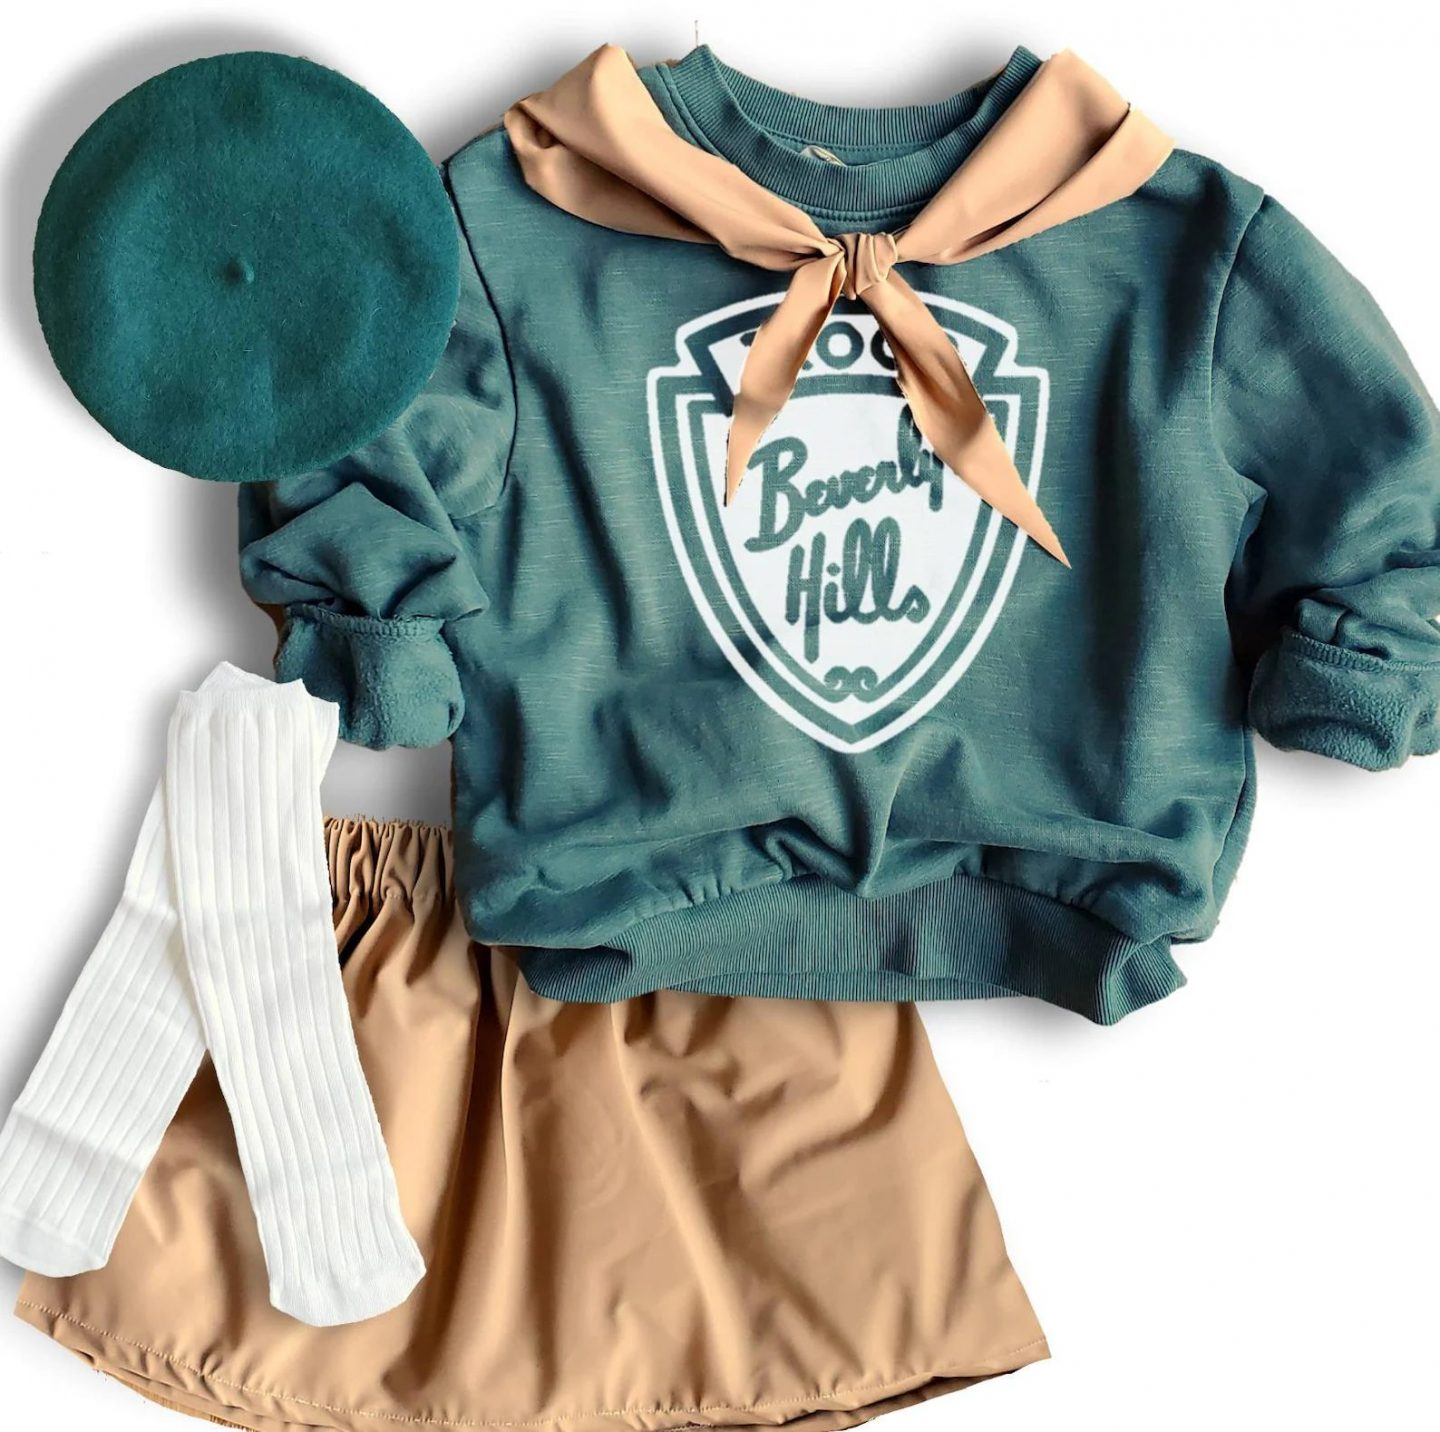 Girl scouts costume for toddlers